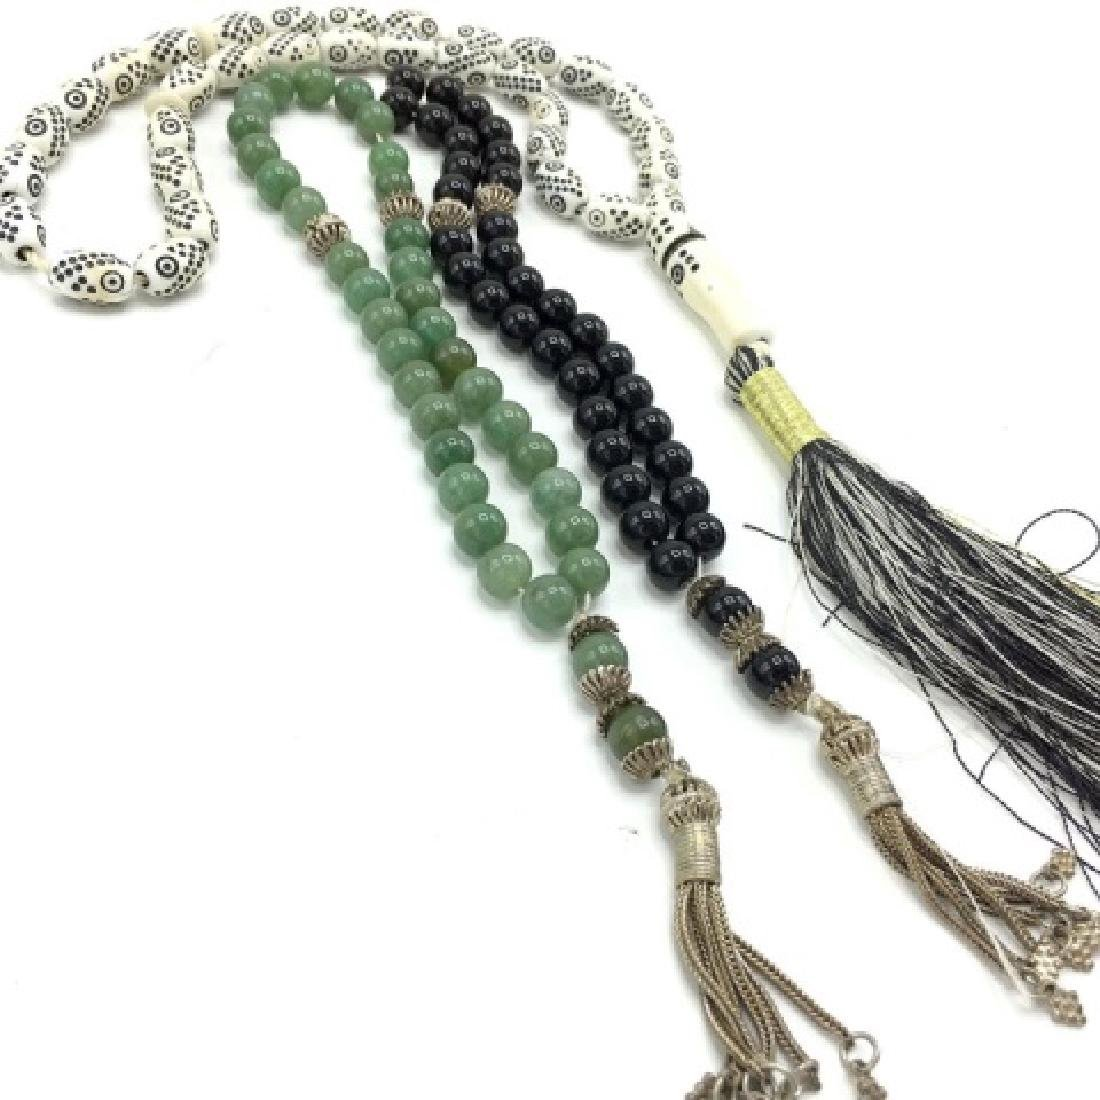 Vintage Worry Beads Silver, Jade and Onyx - 2